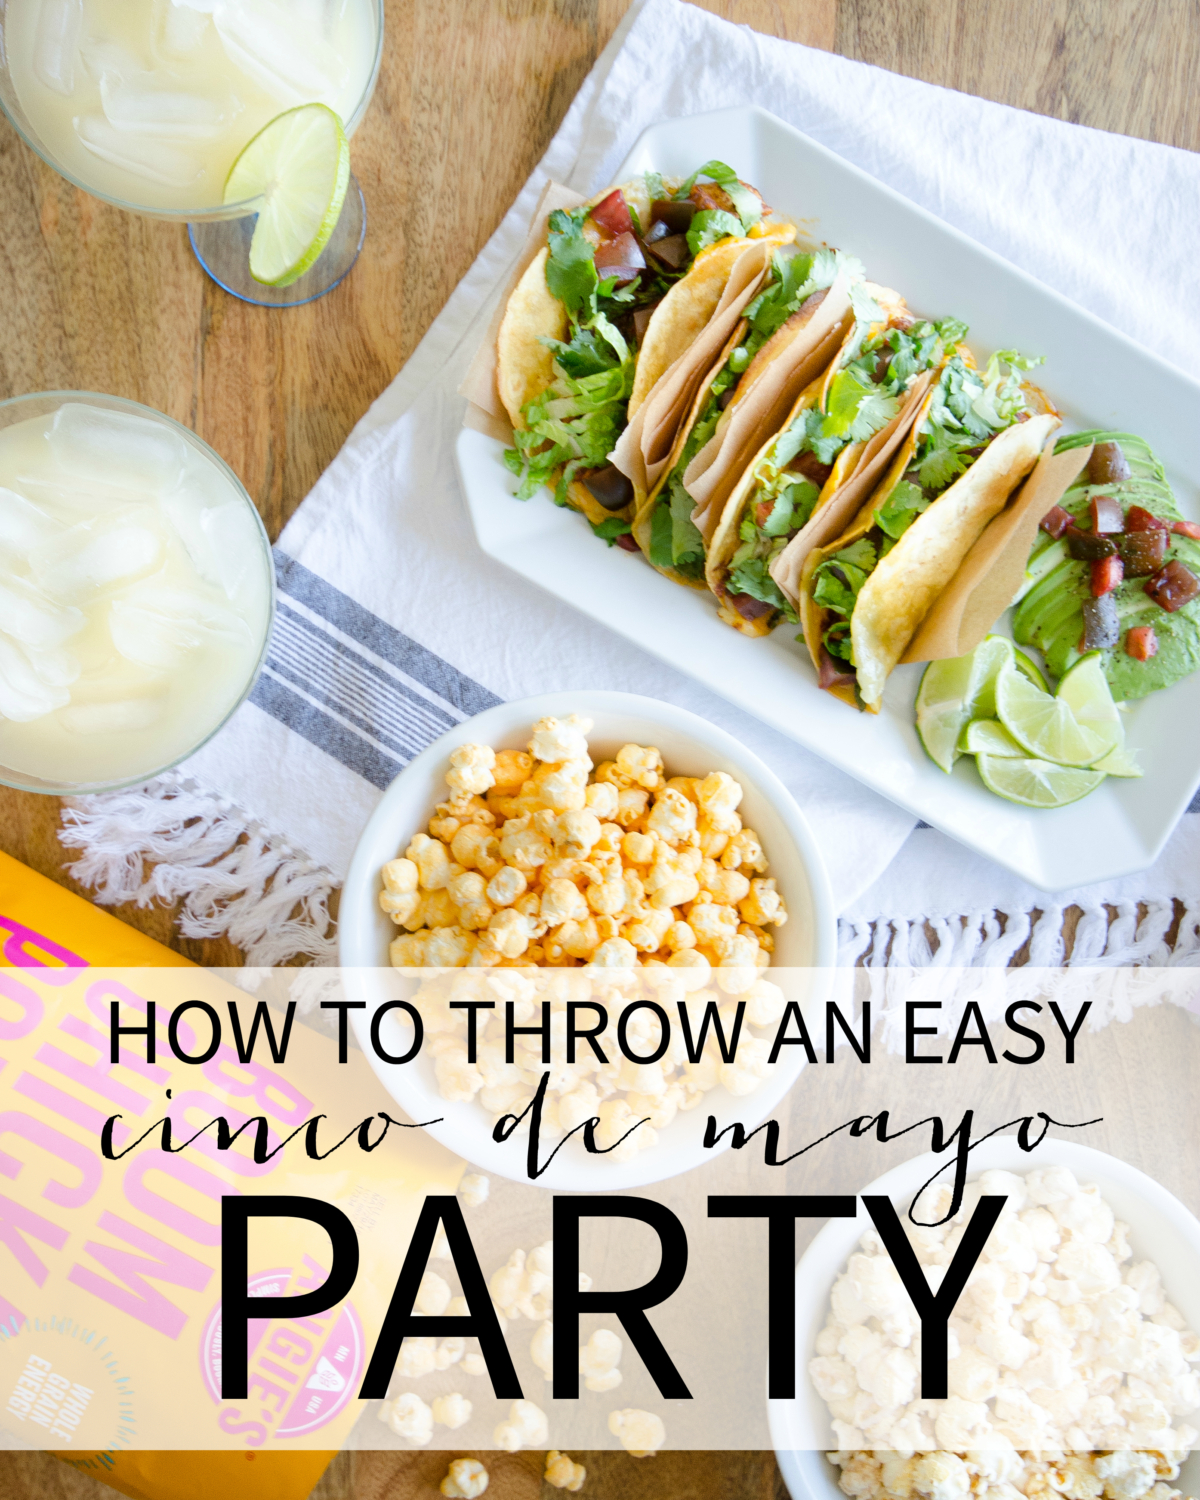 Easy Cinco de Mayo party ideas with both ready-made and do-ahead ideas. Homemade margaritas and the best homemade tacos you've ever tasted are the stars of this simple lineup.